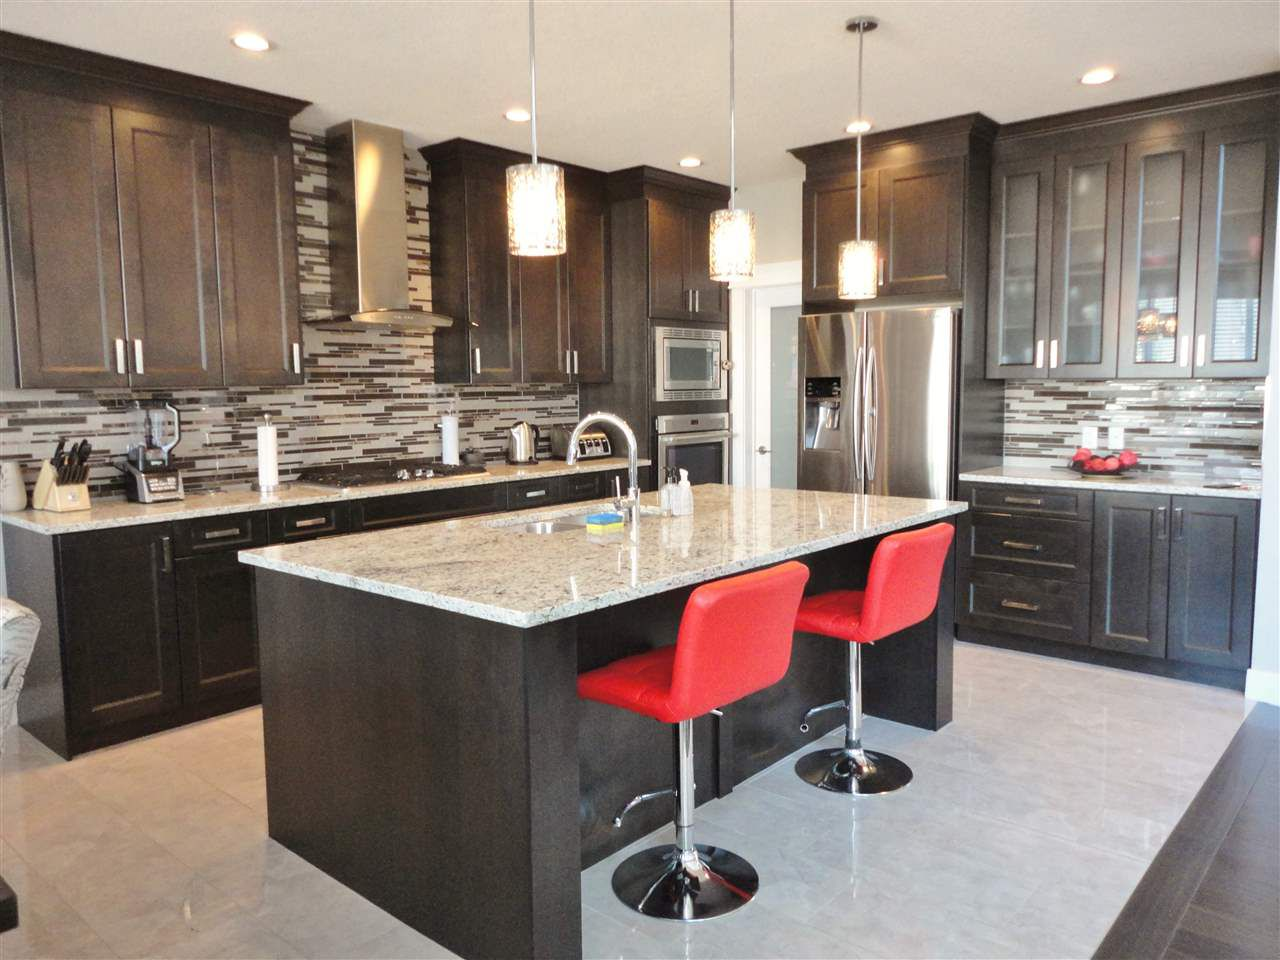 Main Photo: 12 HEWITT Circle: Spruce Grove House for sale : MLS®# E4156425